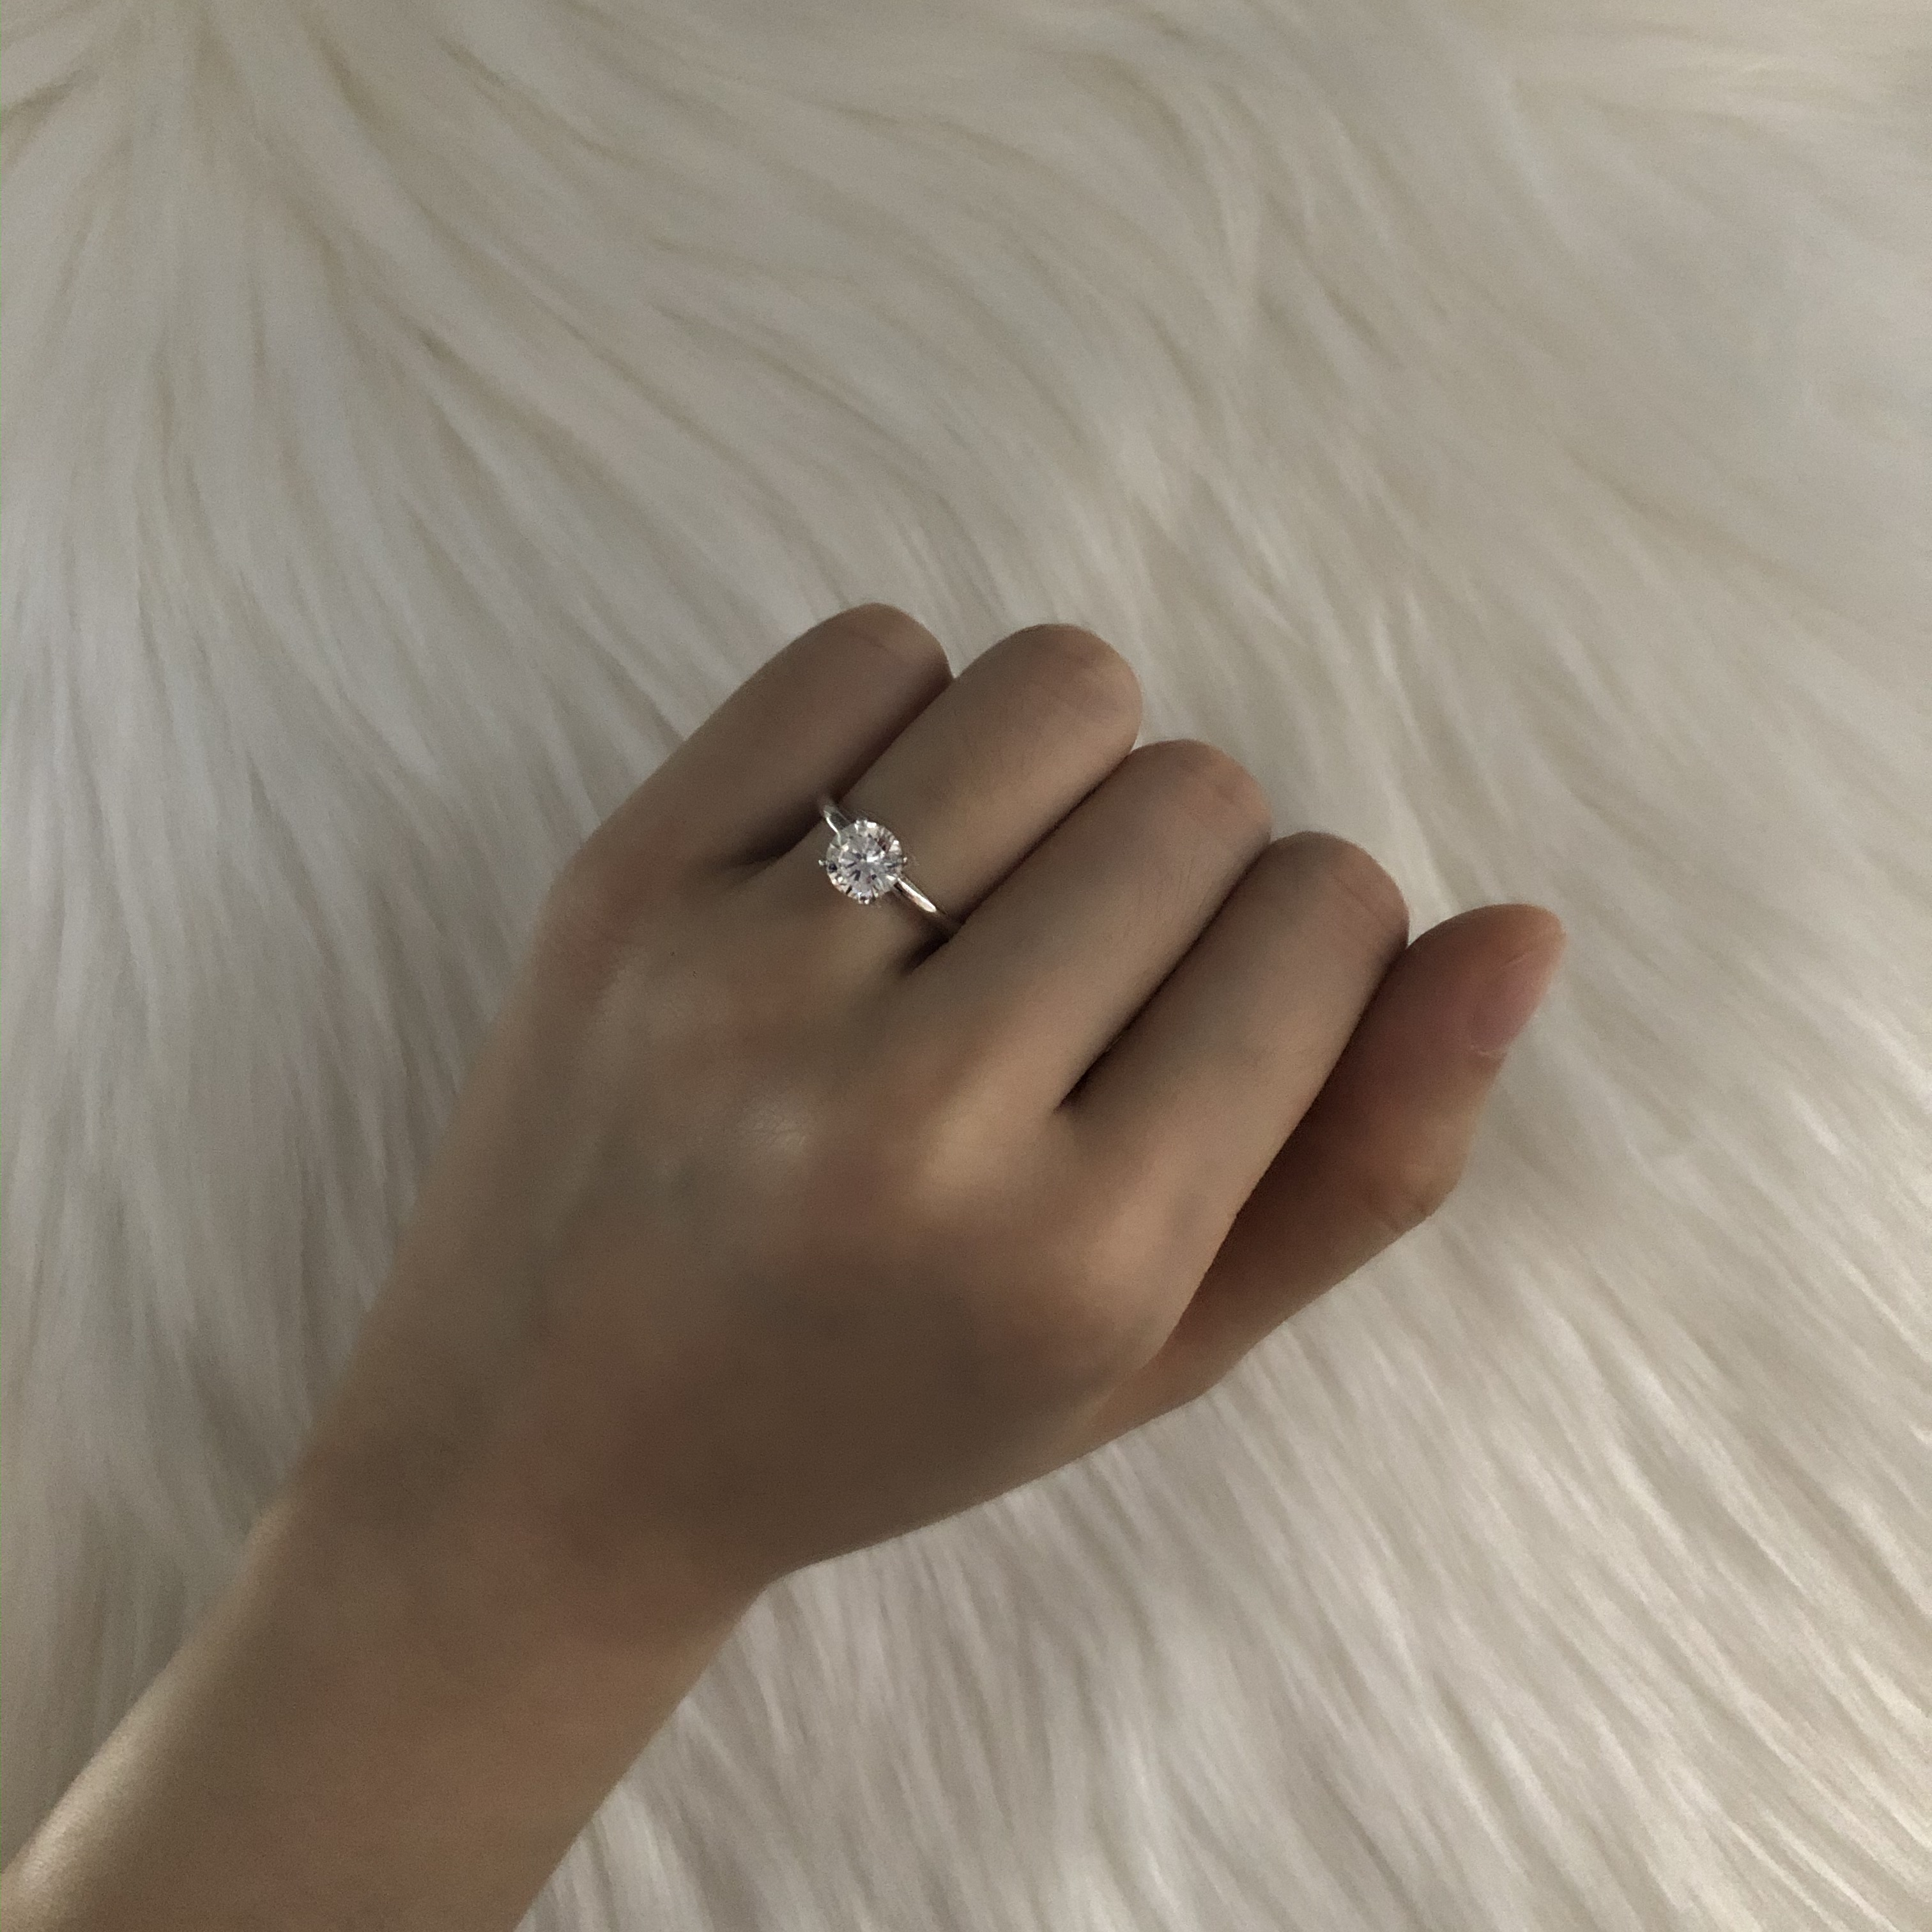 taking engagement ring photo in a dim room